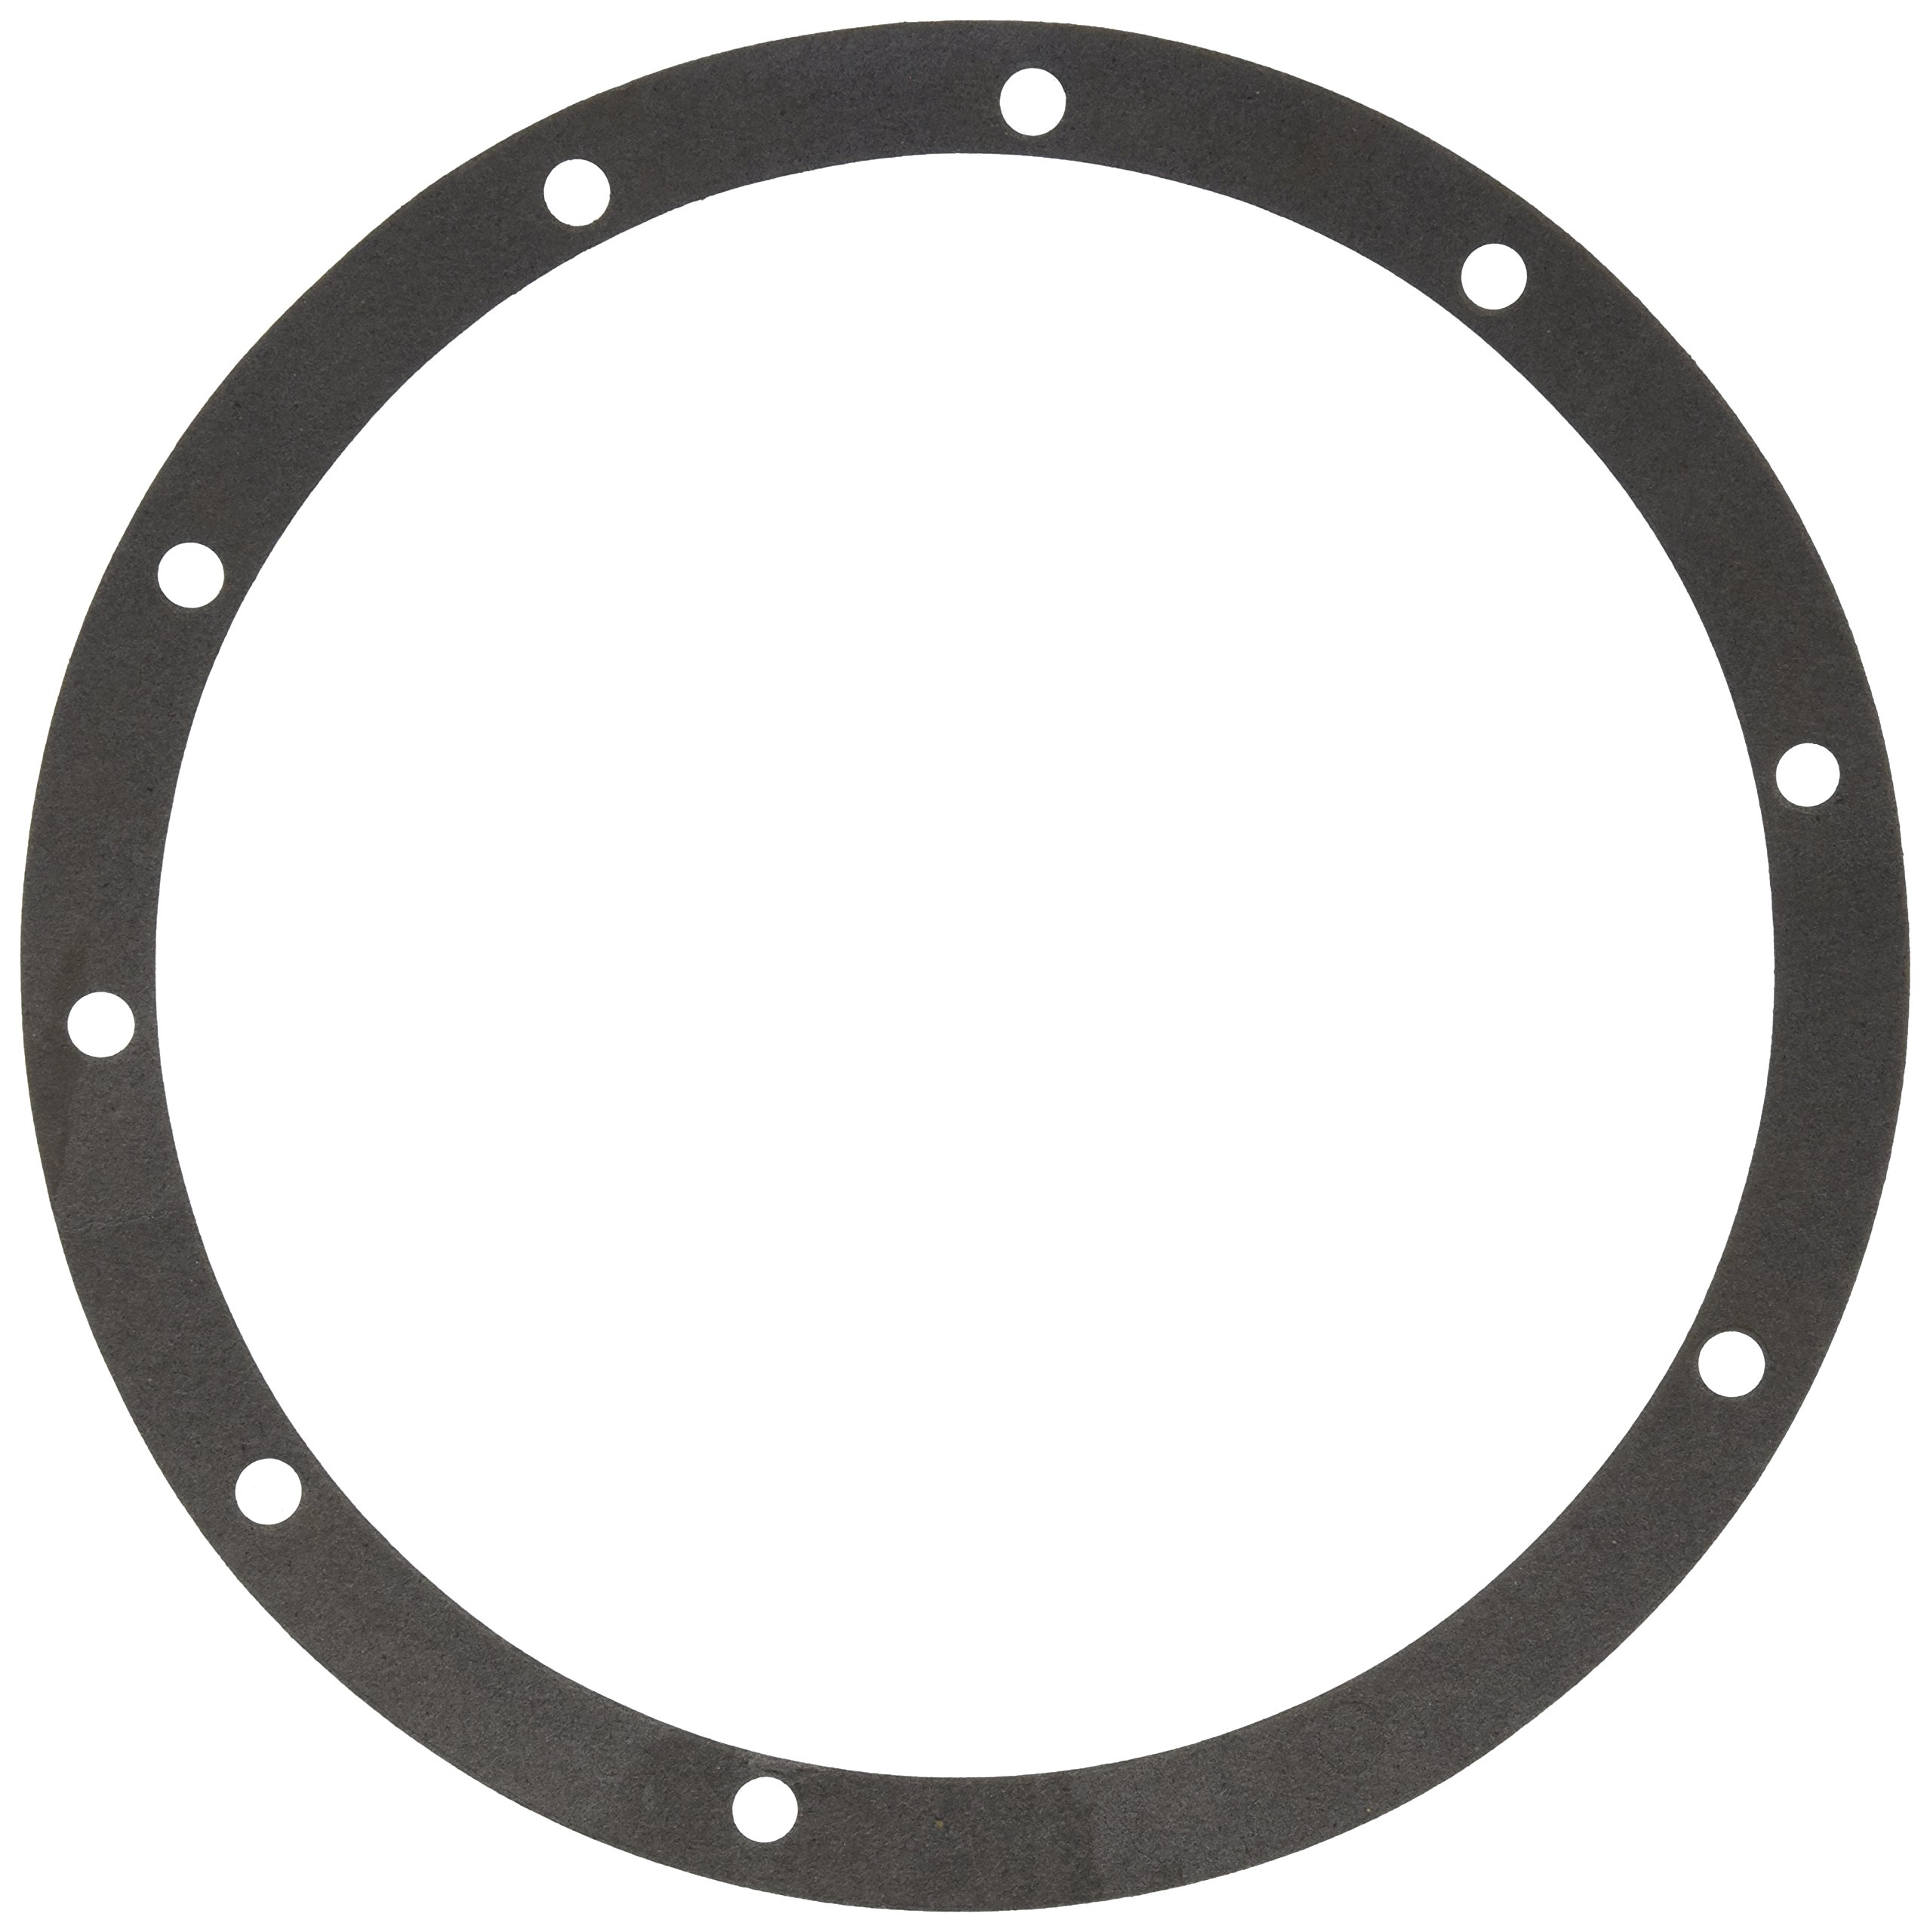 Motive Gear 5108 Differential Cover Gasket